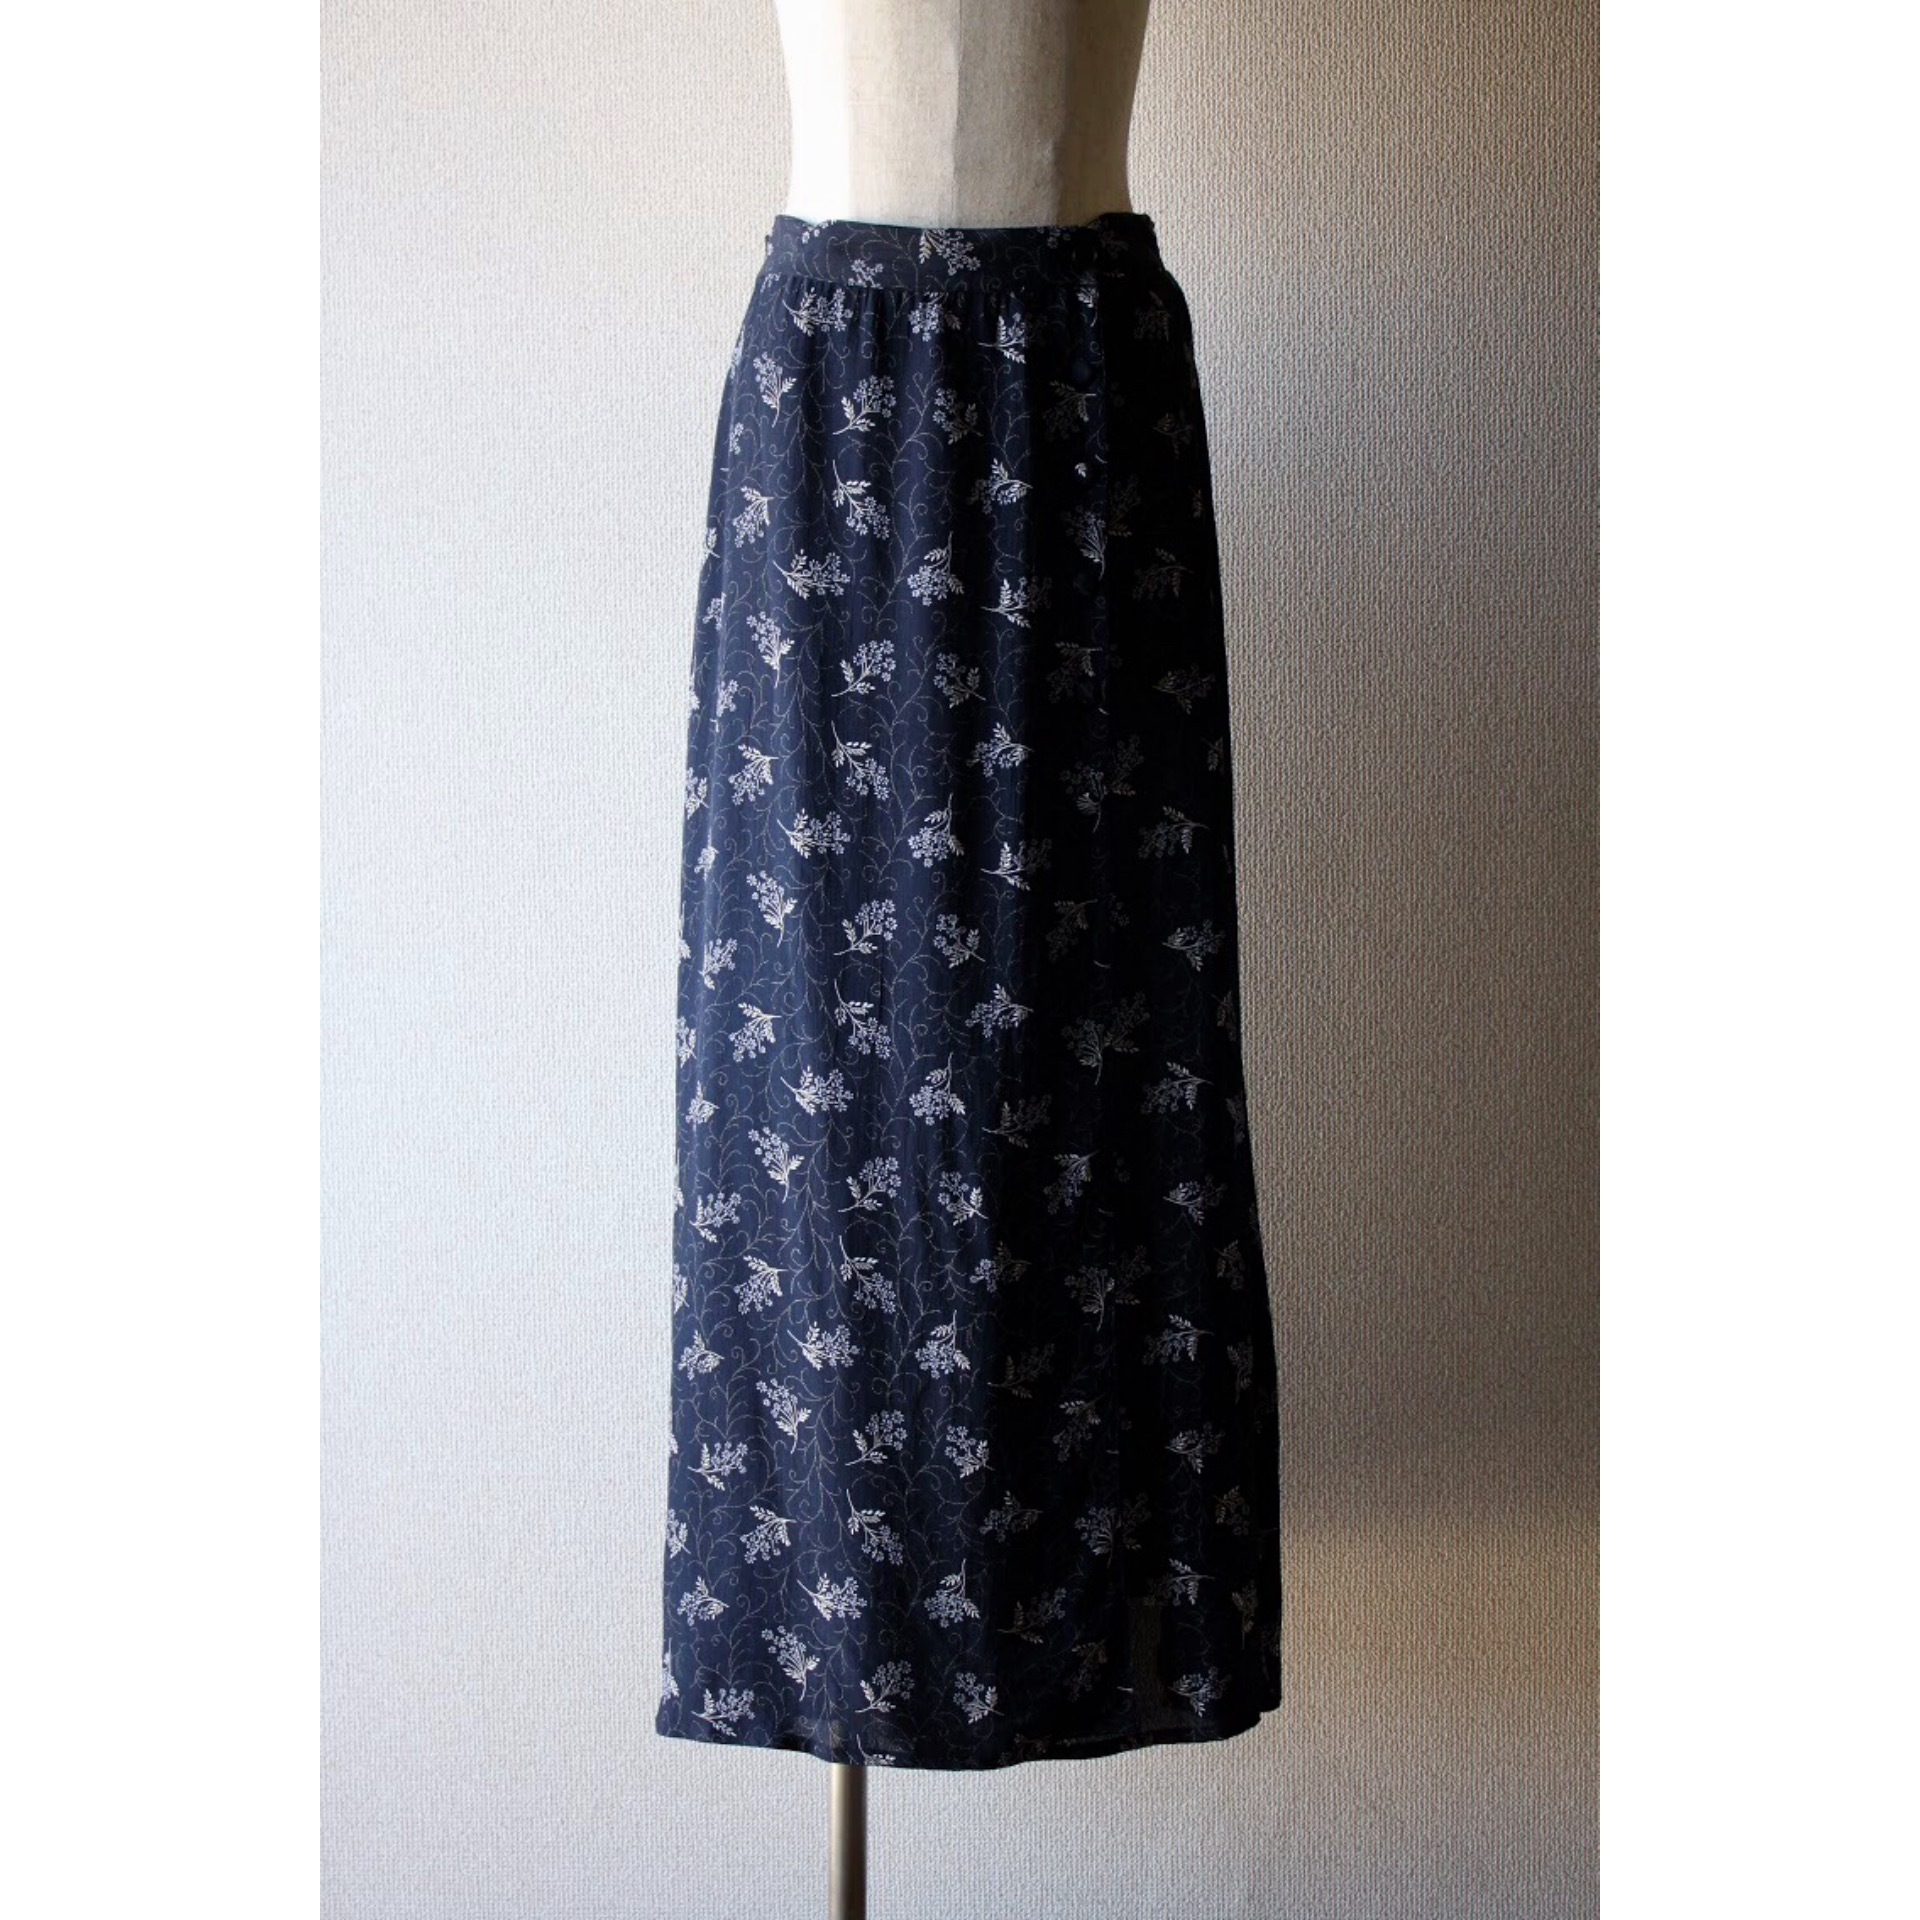 Vintage wrapped skirt